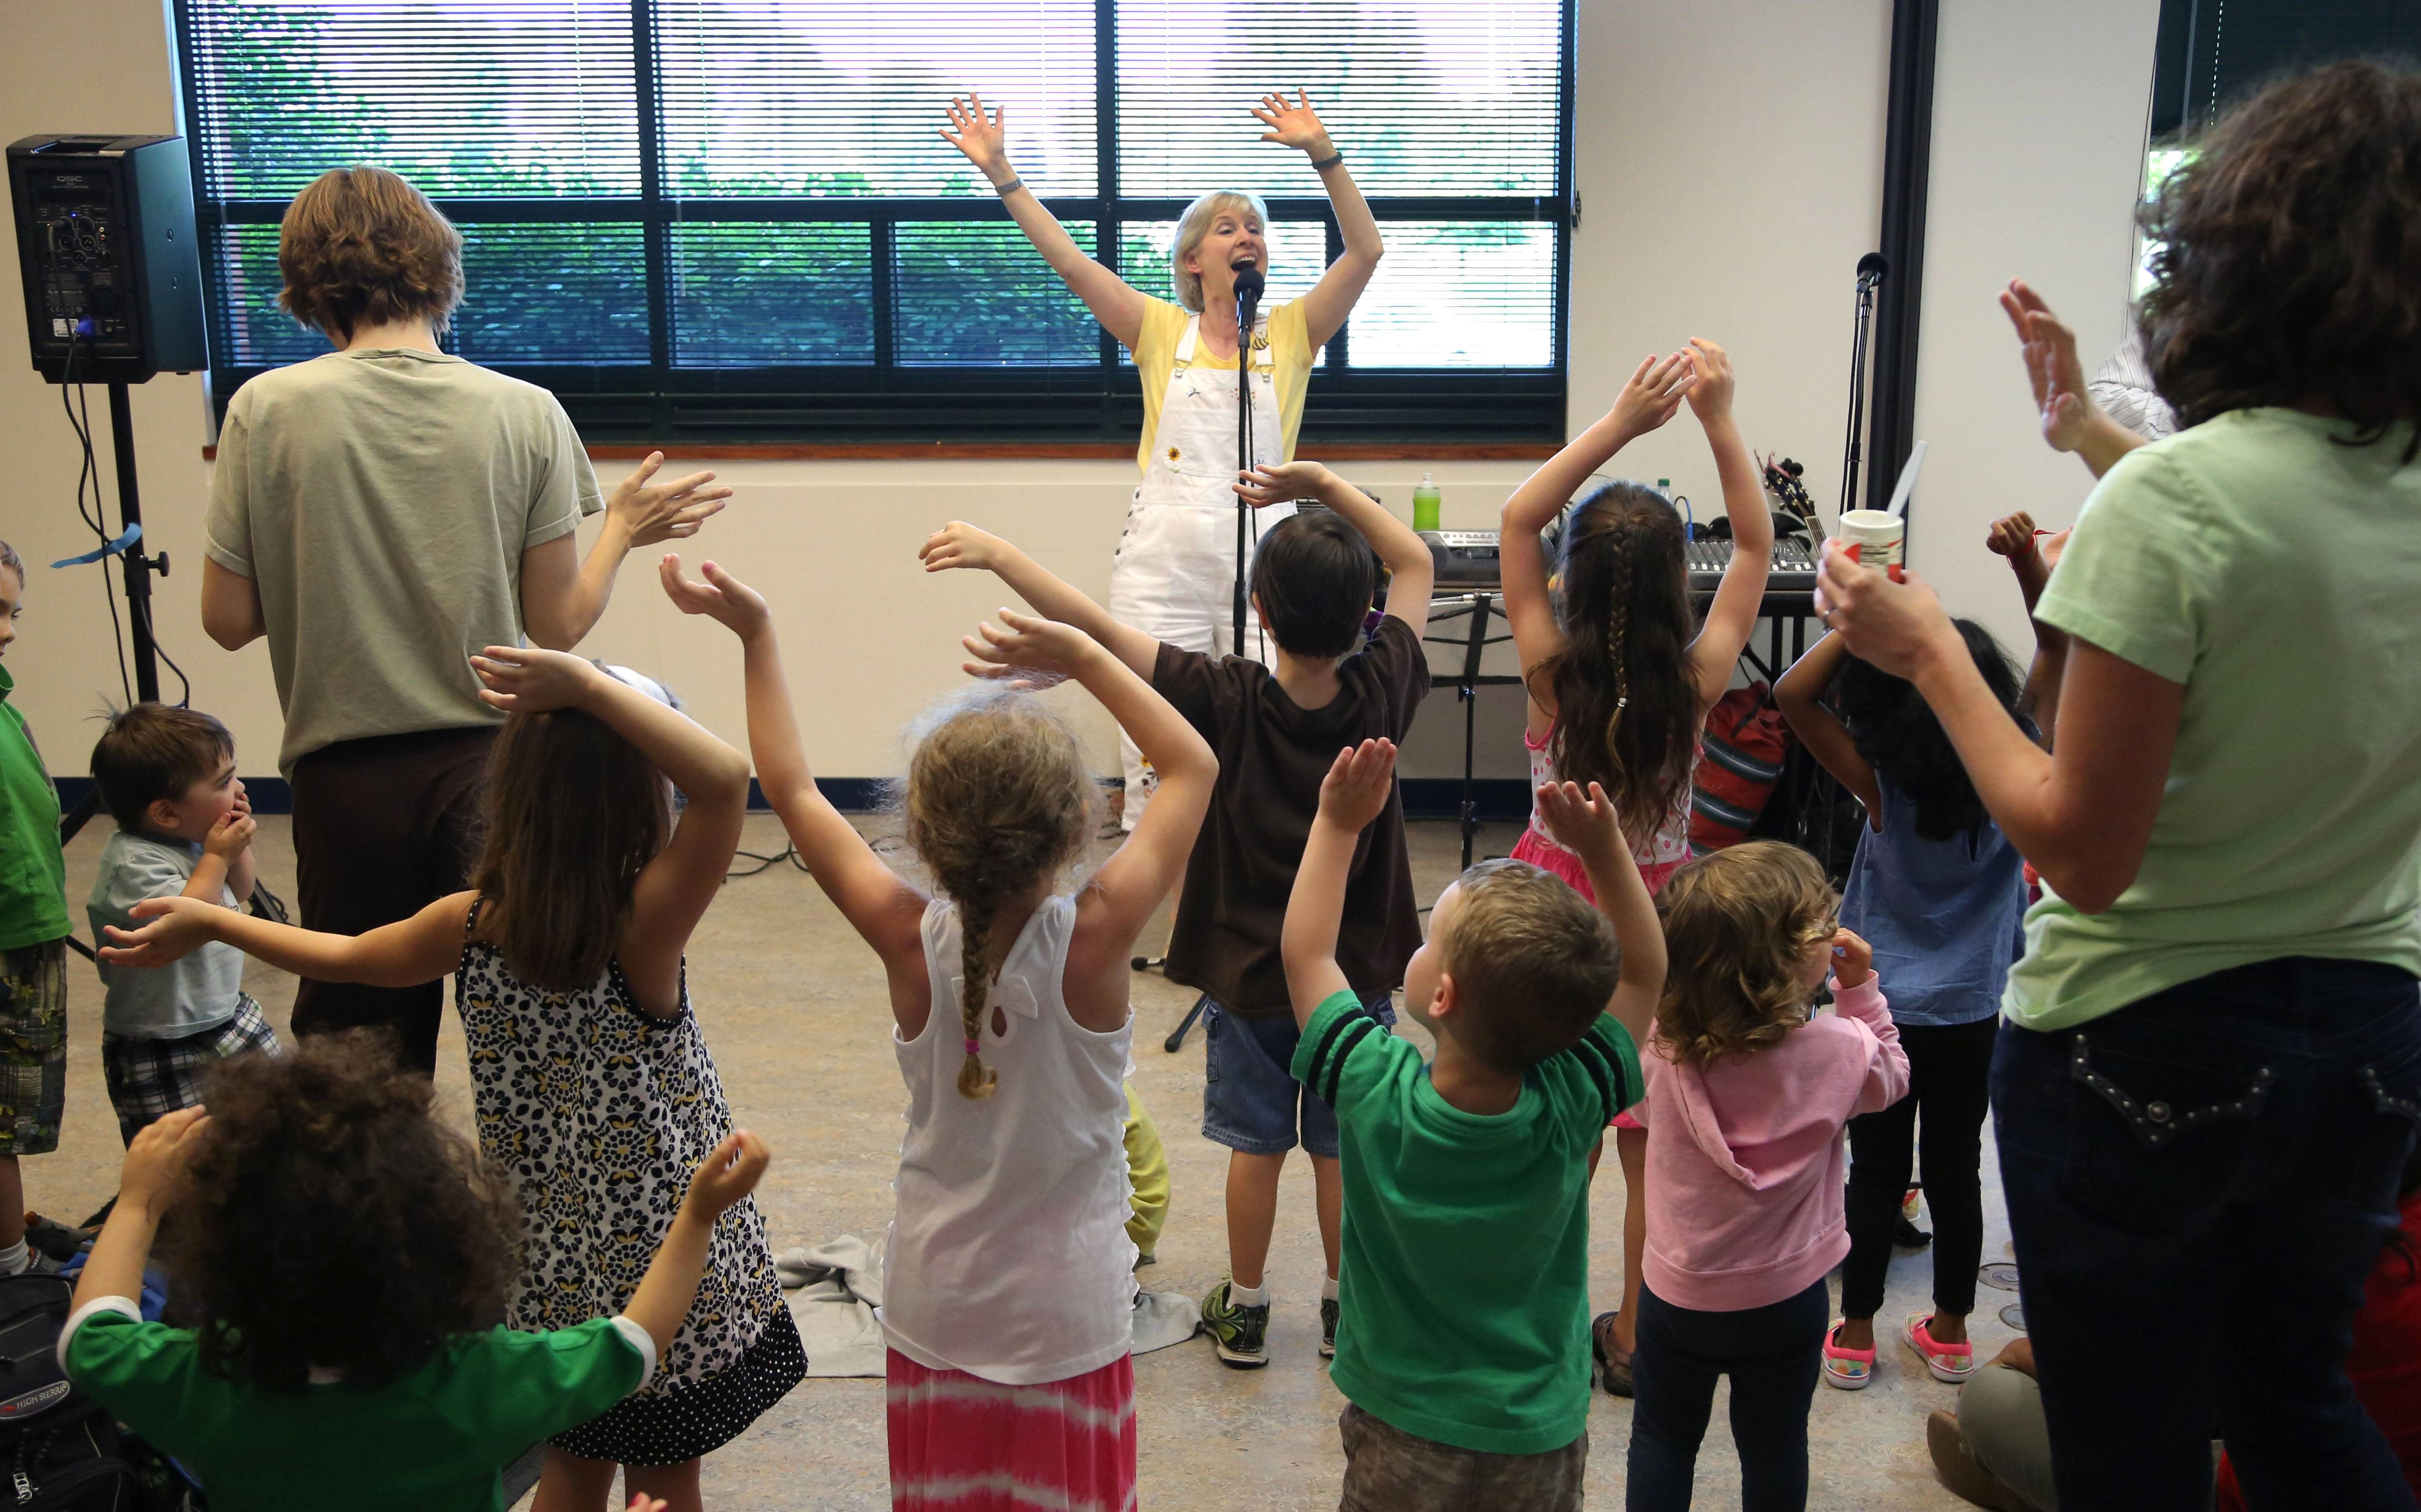 Carol Stephens of Park Ridge got kids to wiggle, giggle, hop and stomp as she brought her sing a long music and movement activities to the Grayslake Public Library Wednesday night.